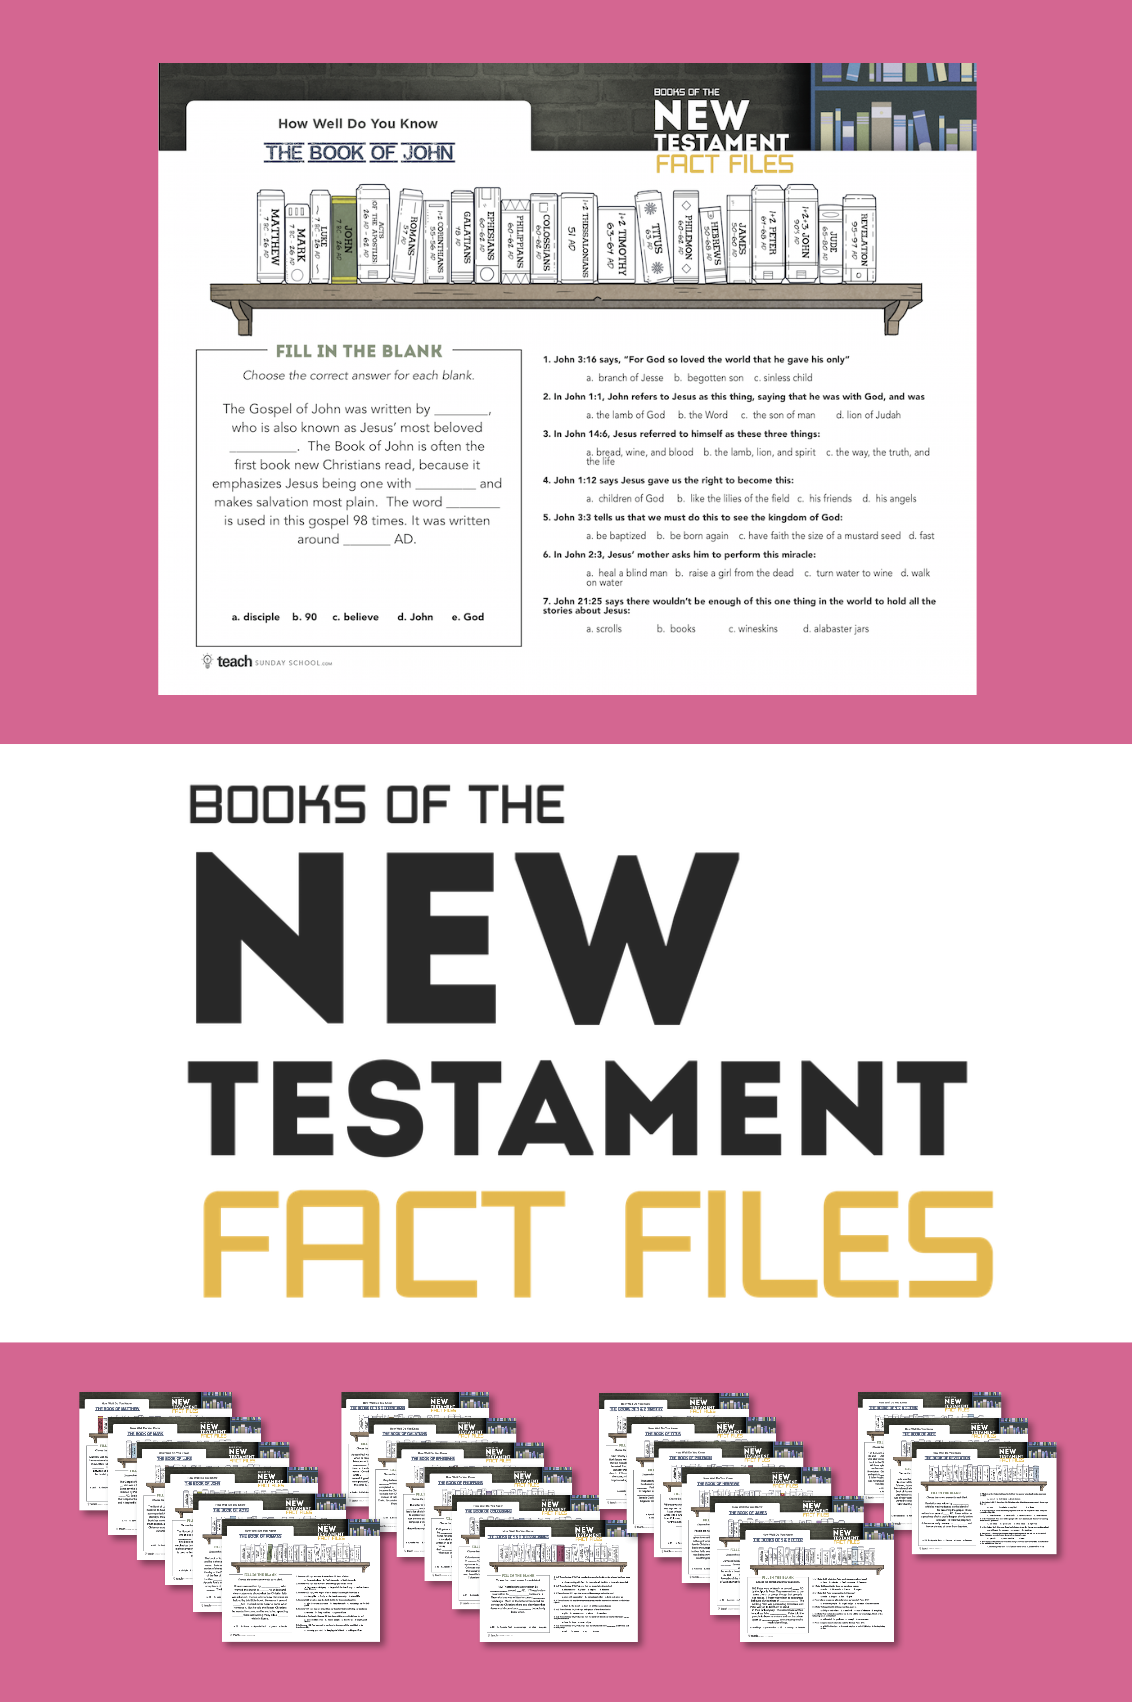 Books Of The New Testament Fact Files